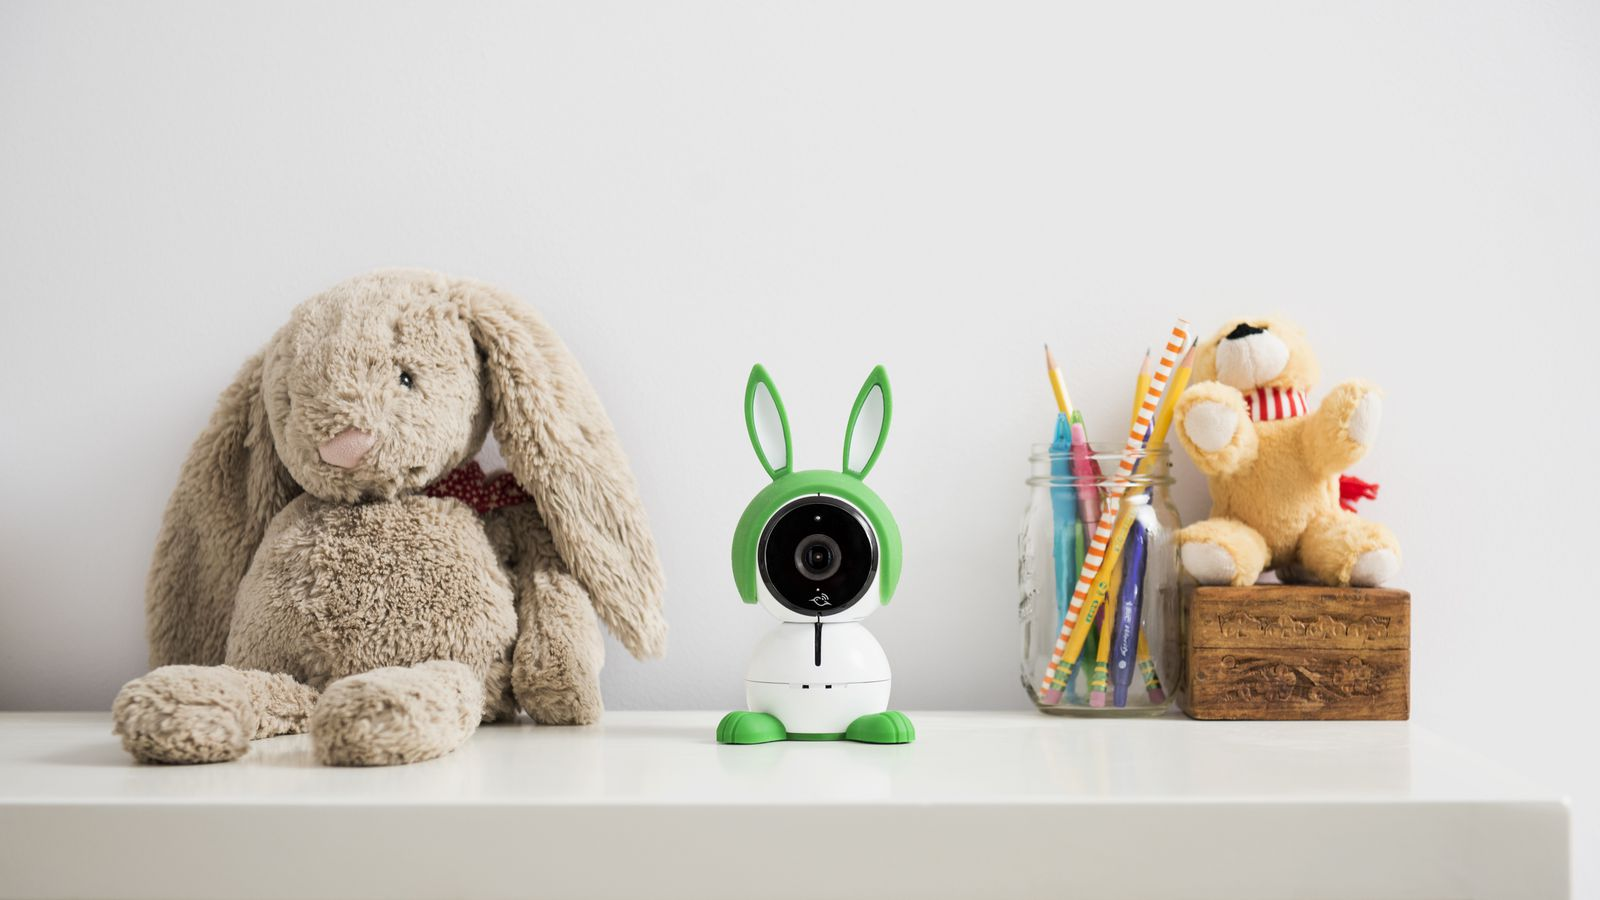 Look At This Creepy Cute Little Baby Monitor With Bunny